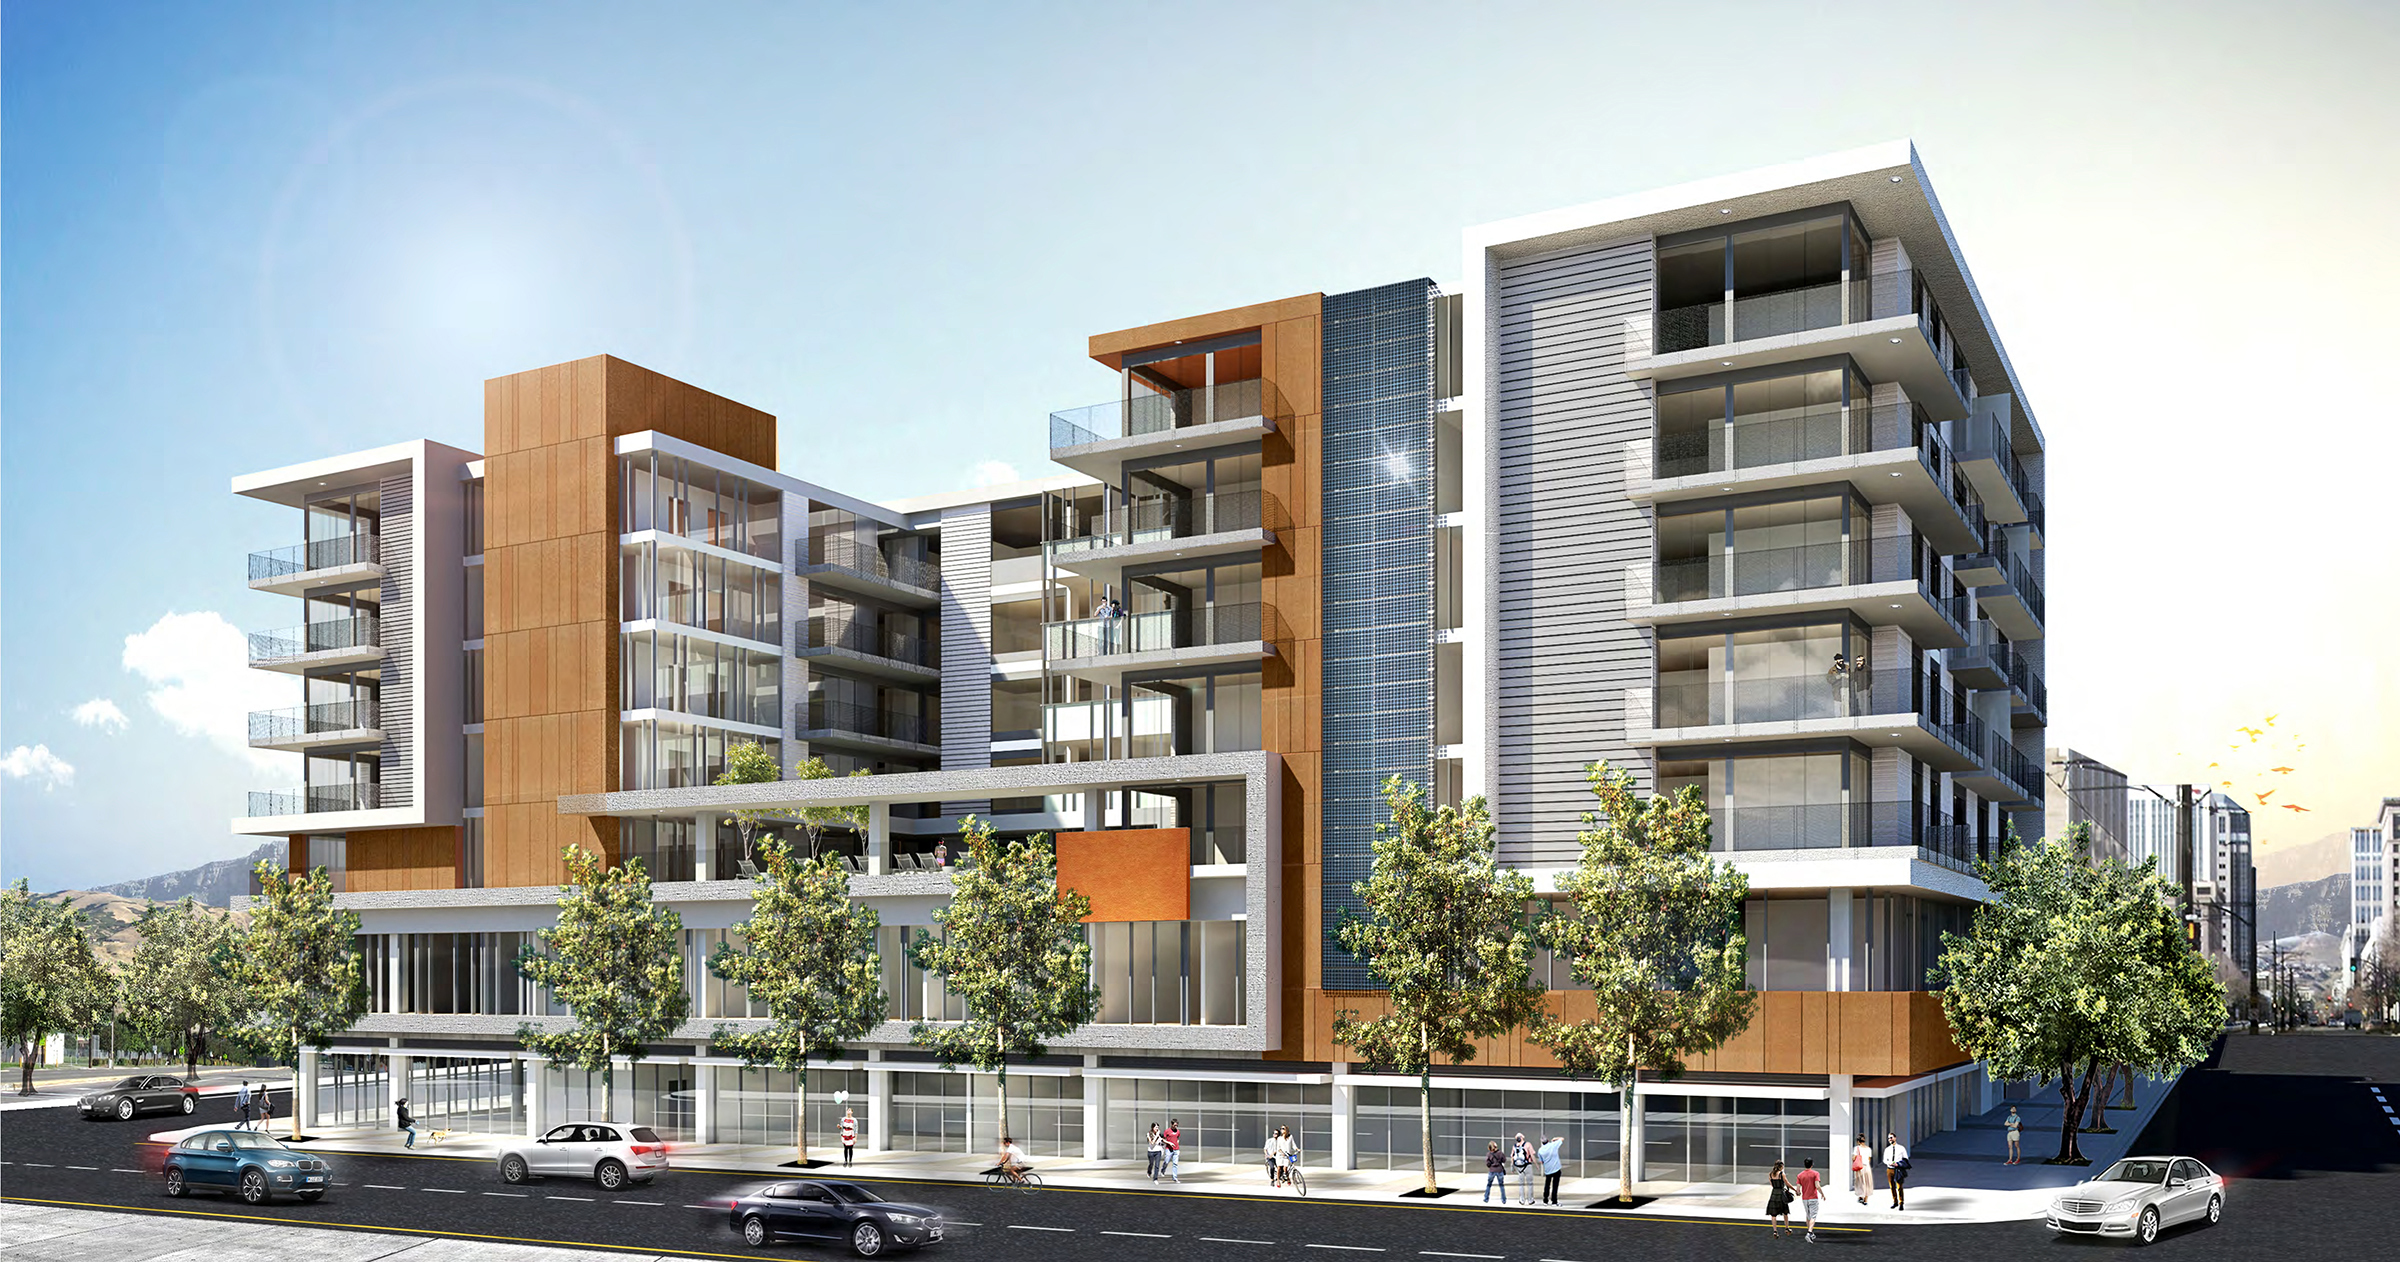 Construction Starts On 45m Mixed Use Project In East